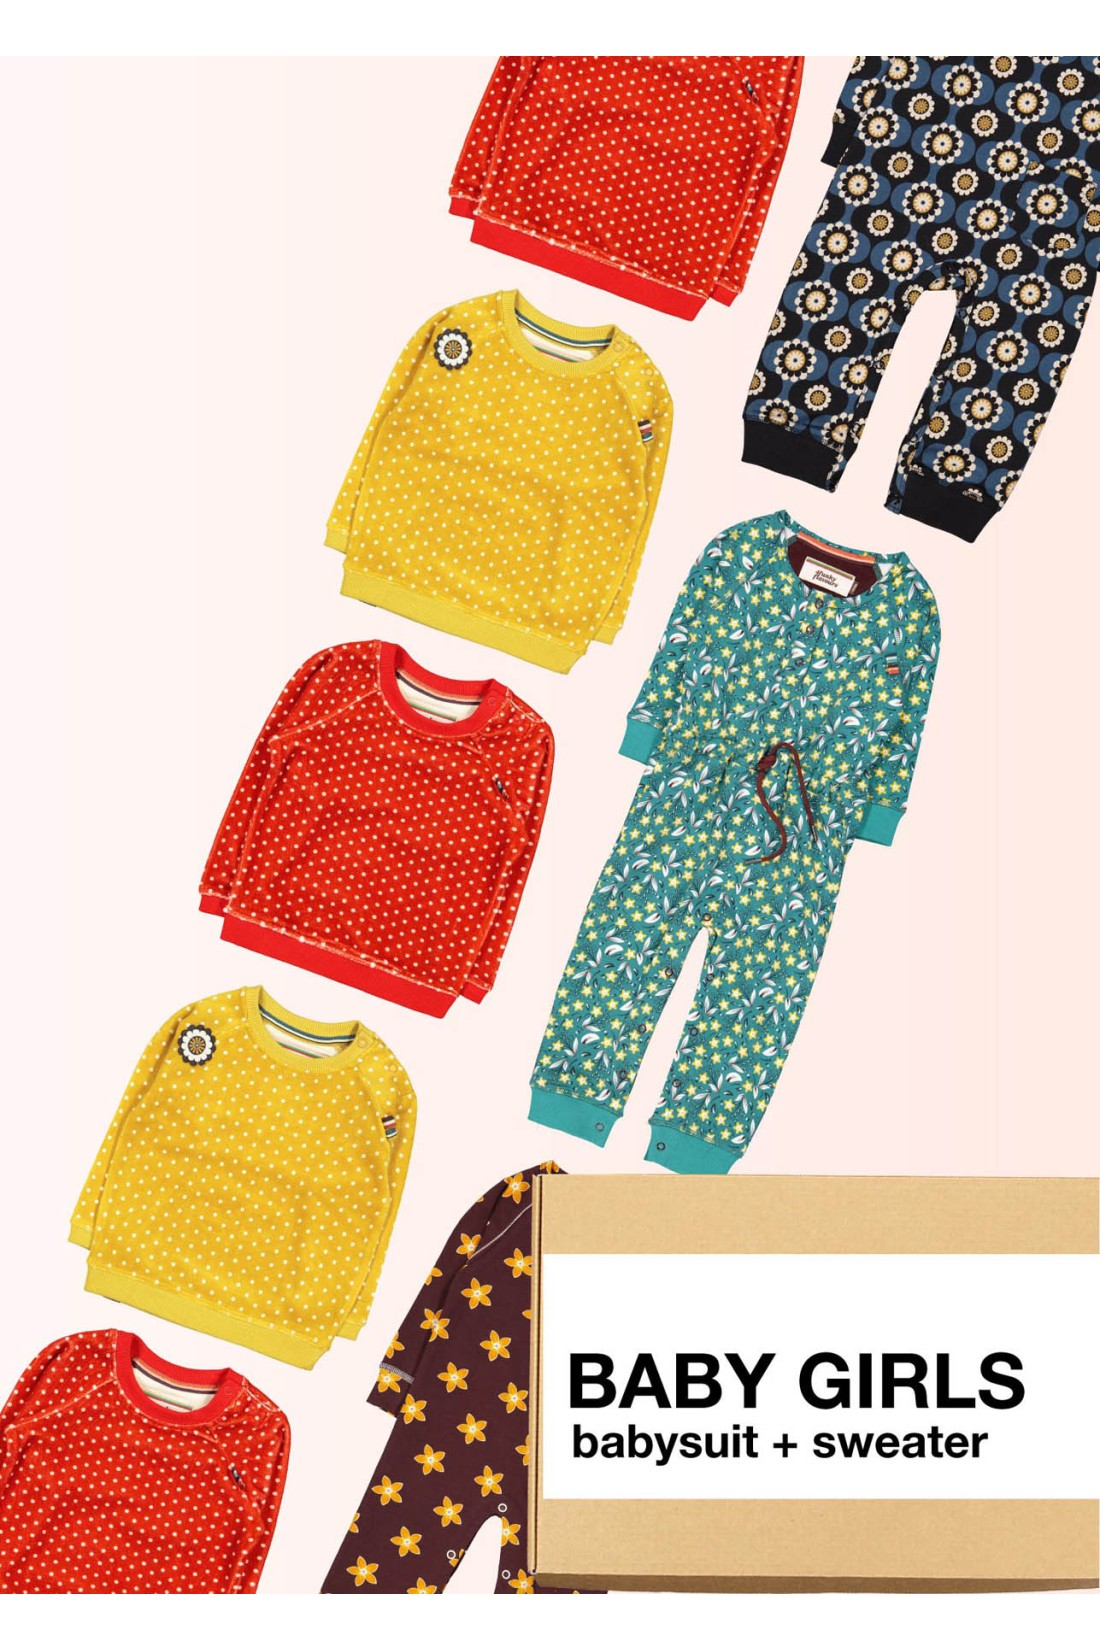 Surprise Box Baby Girls - Baby Suit + Sweater